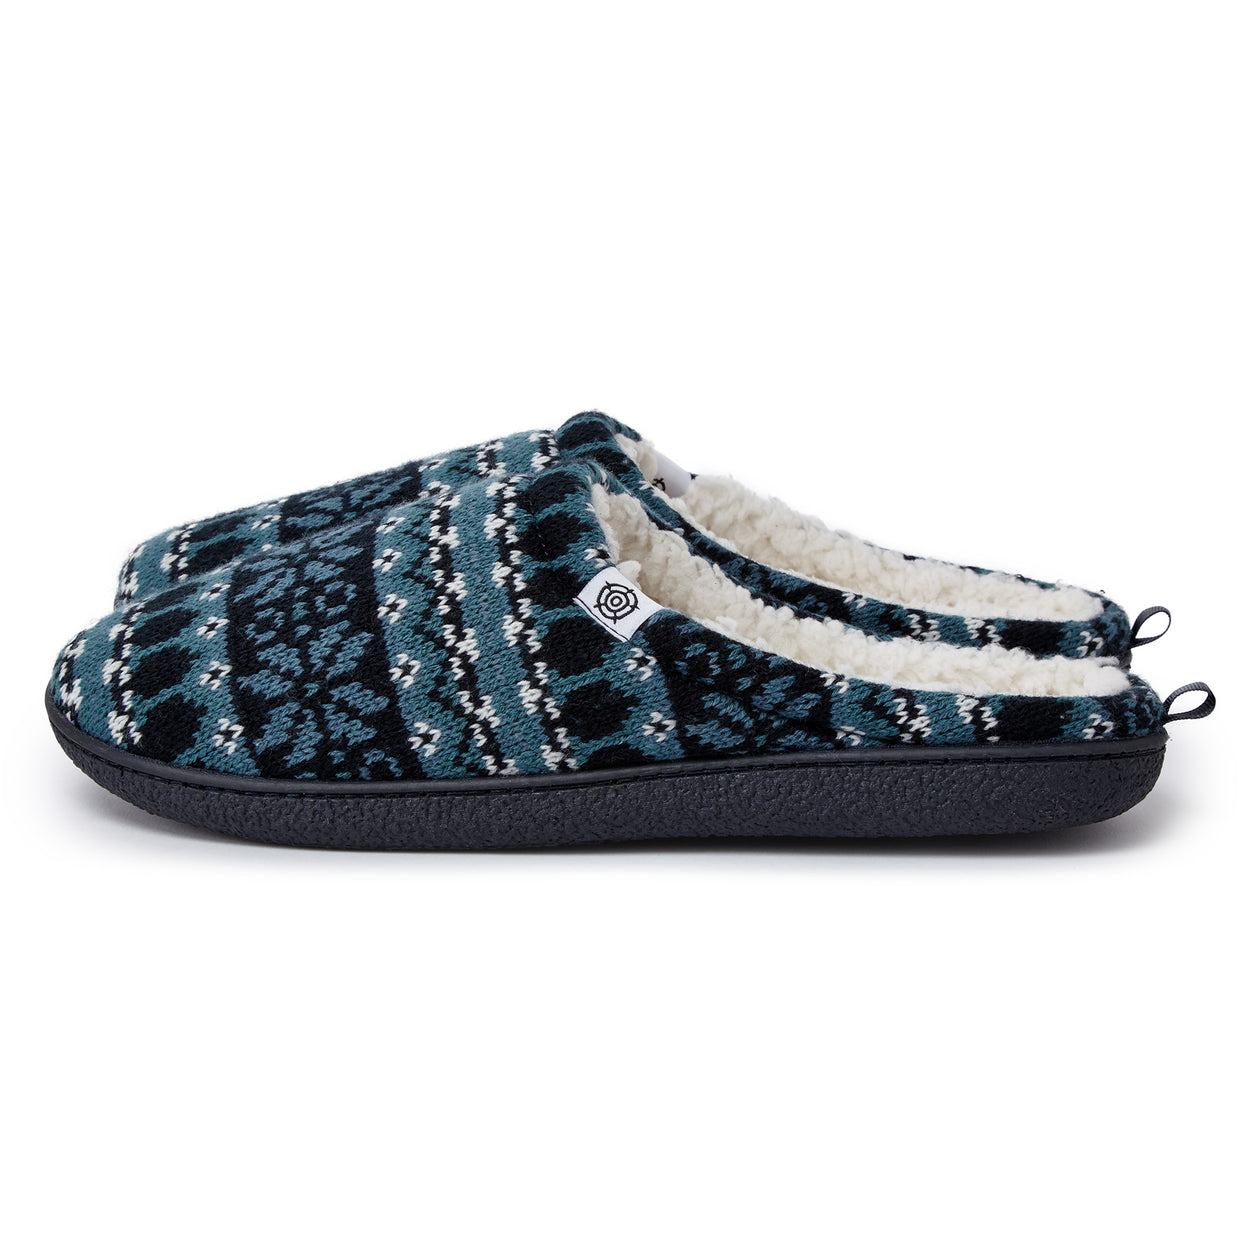 Todwick Mens Knit Slipper - Navy Fairisle image 4